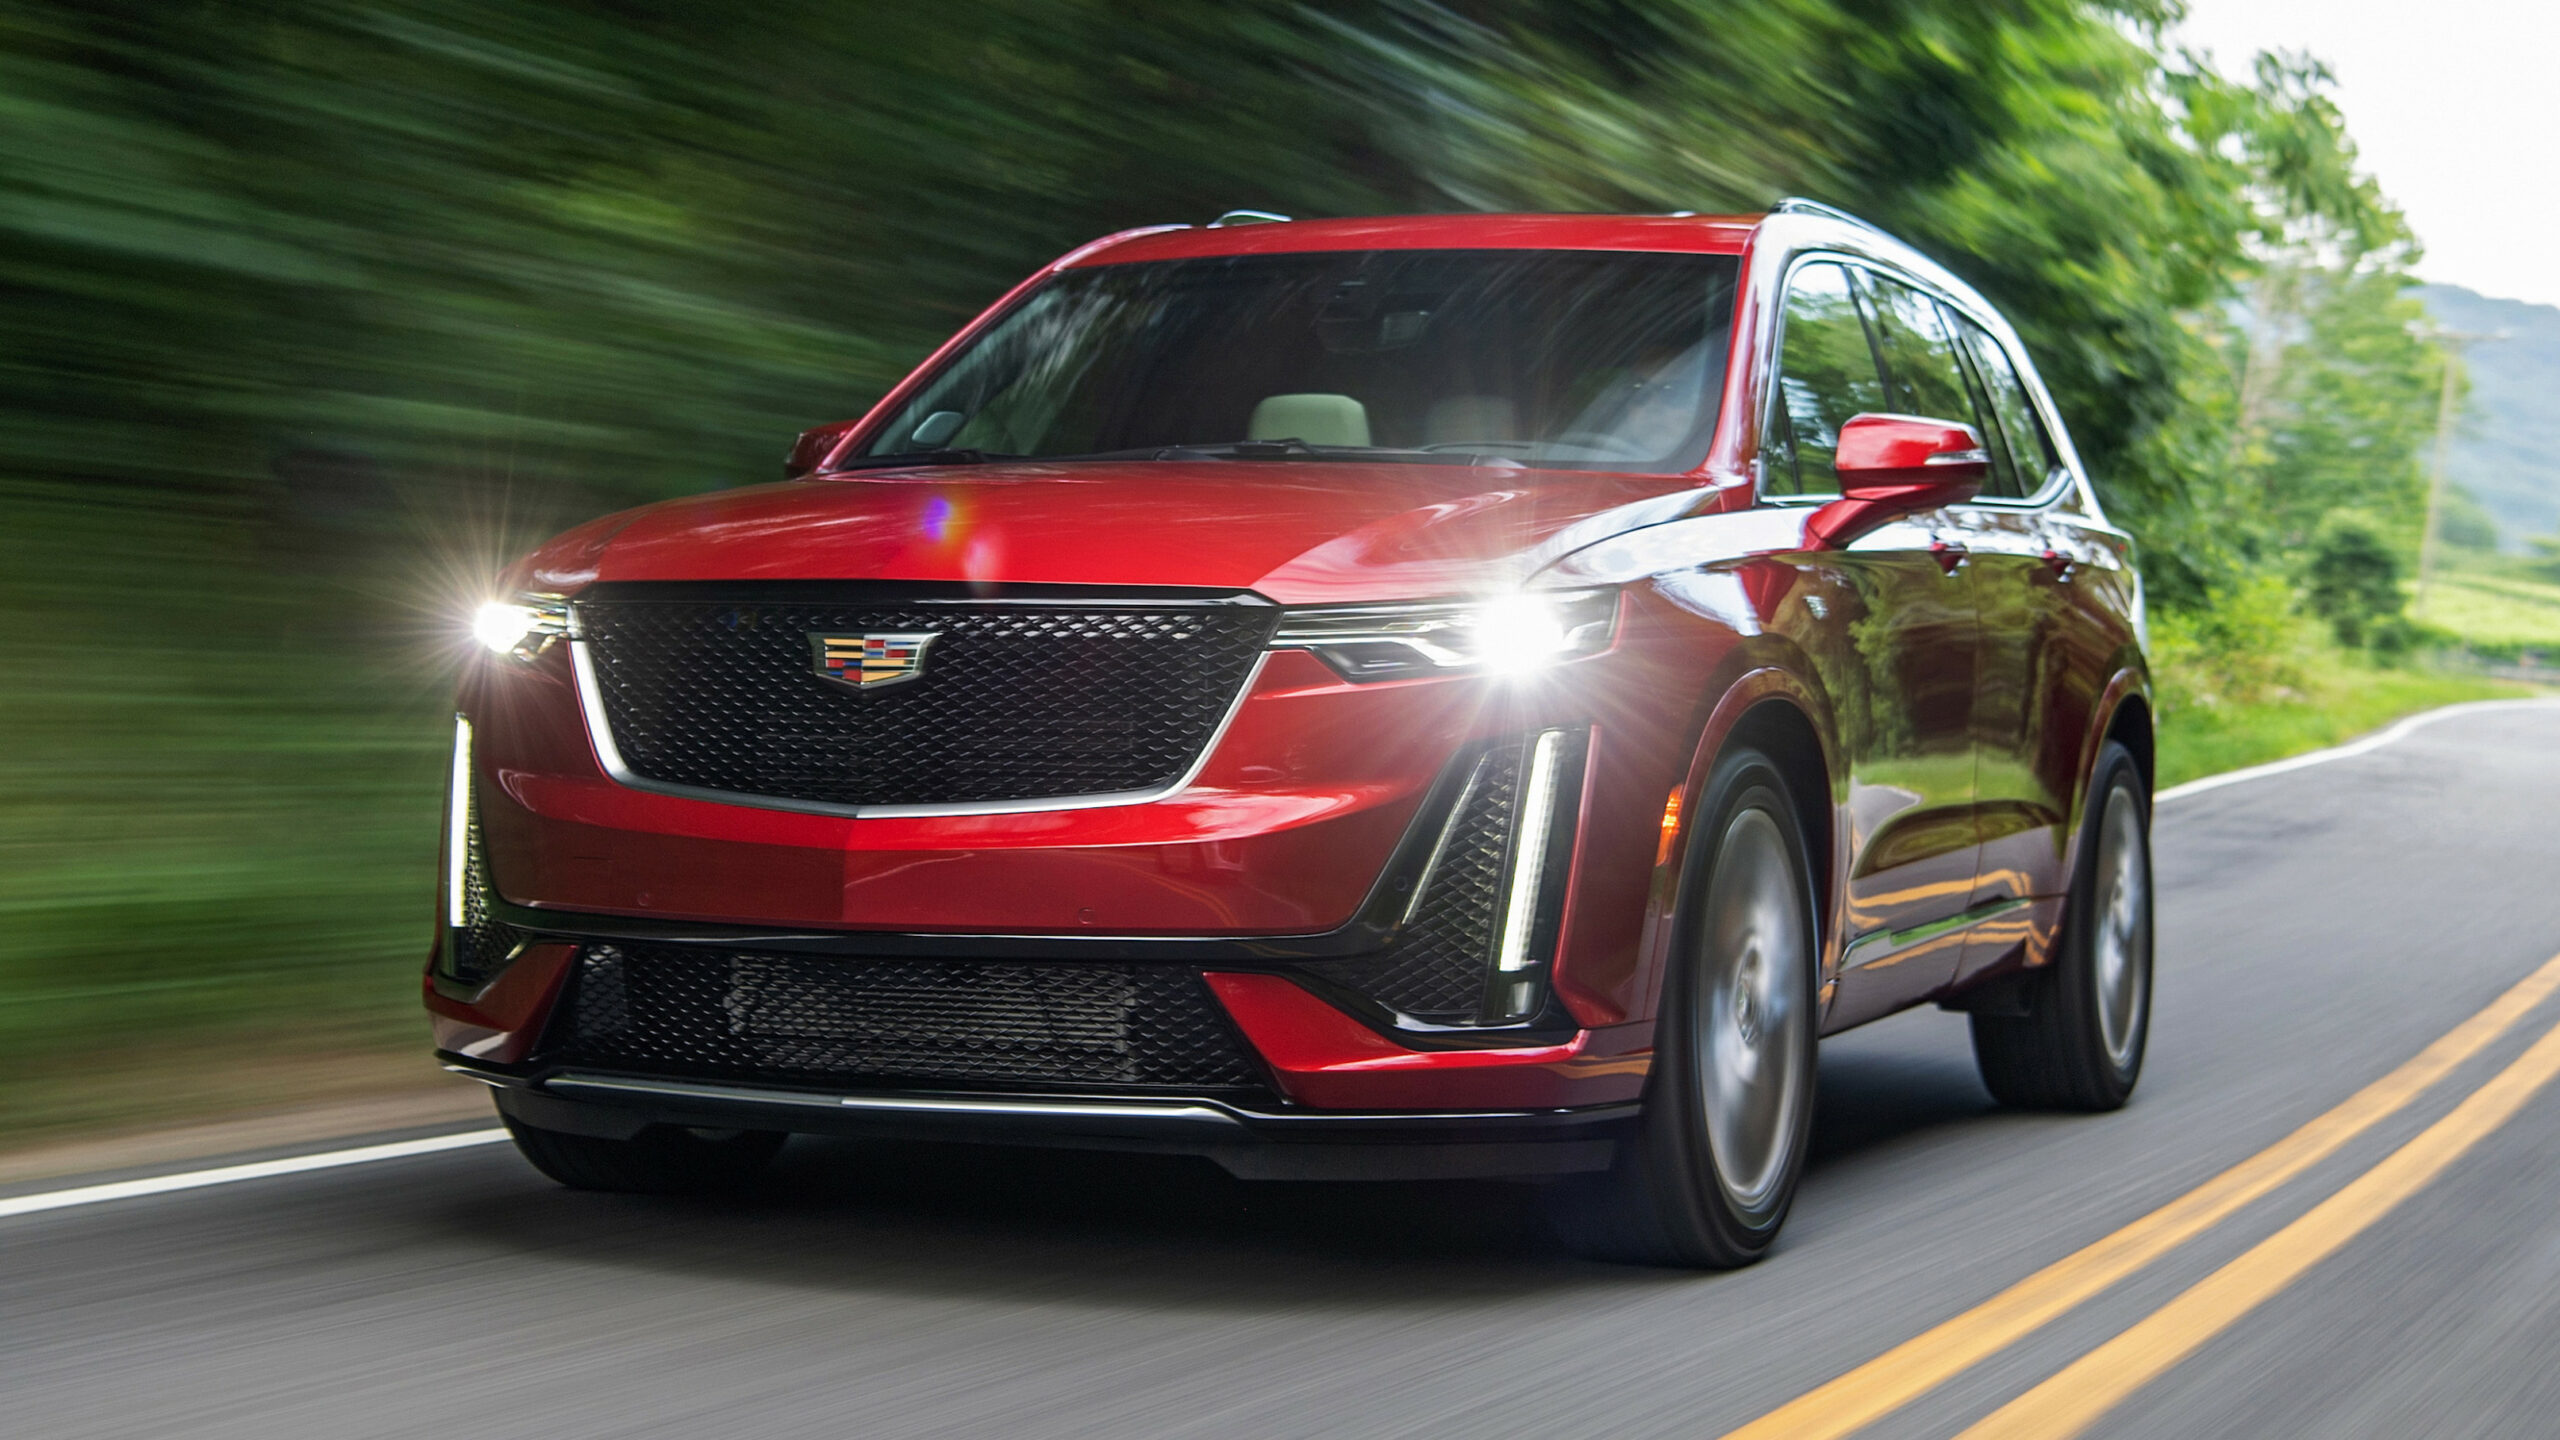 7 Cadillac XT7 Sport First Drive Review | What's new, style and ...